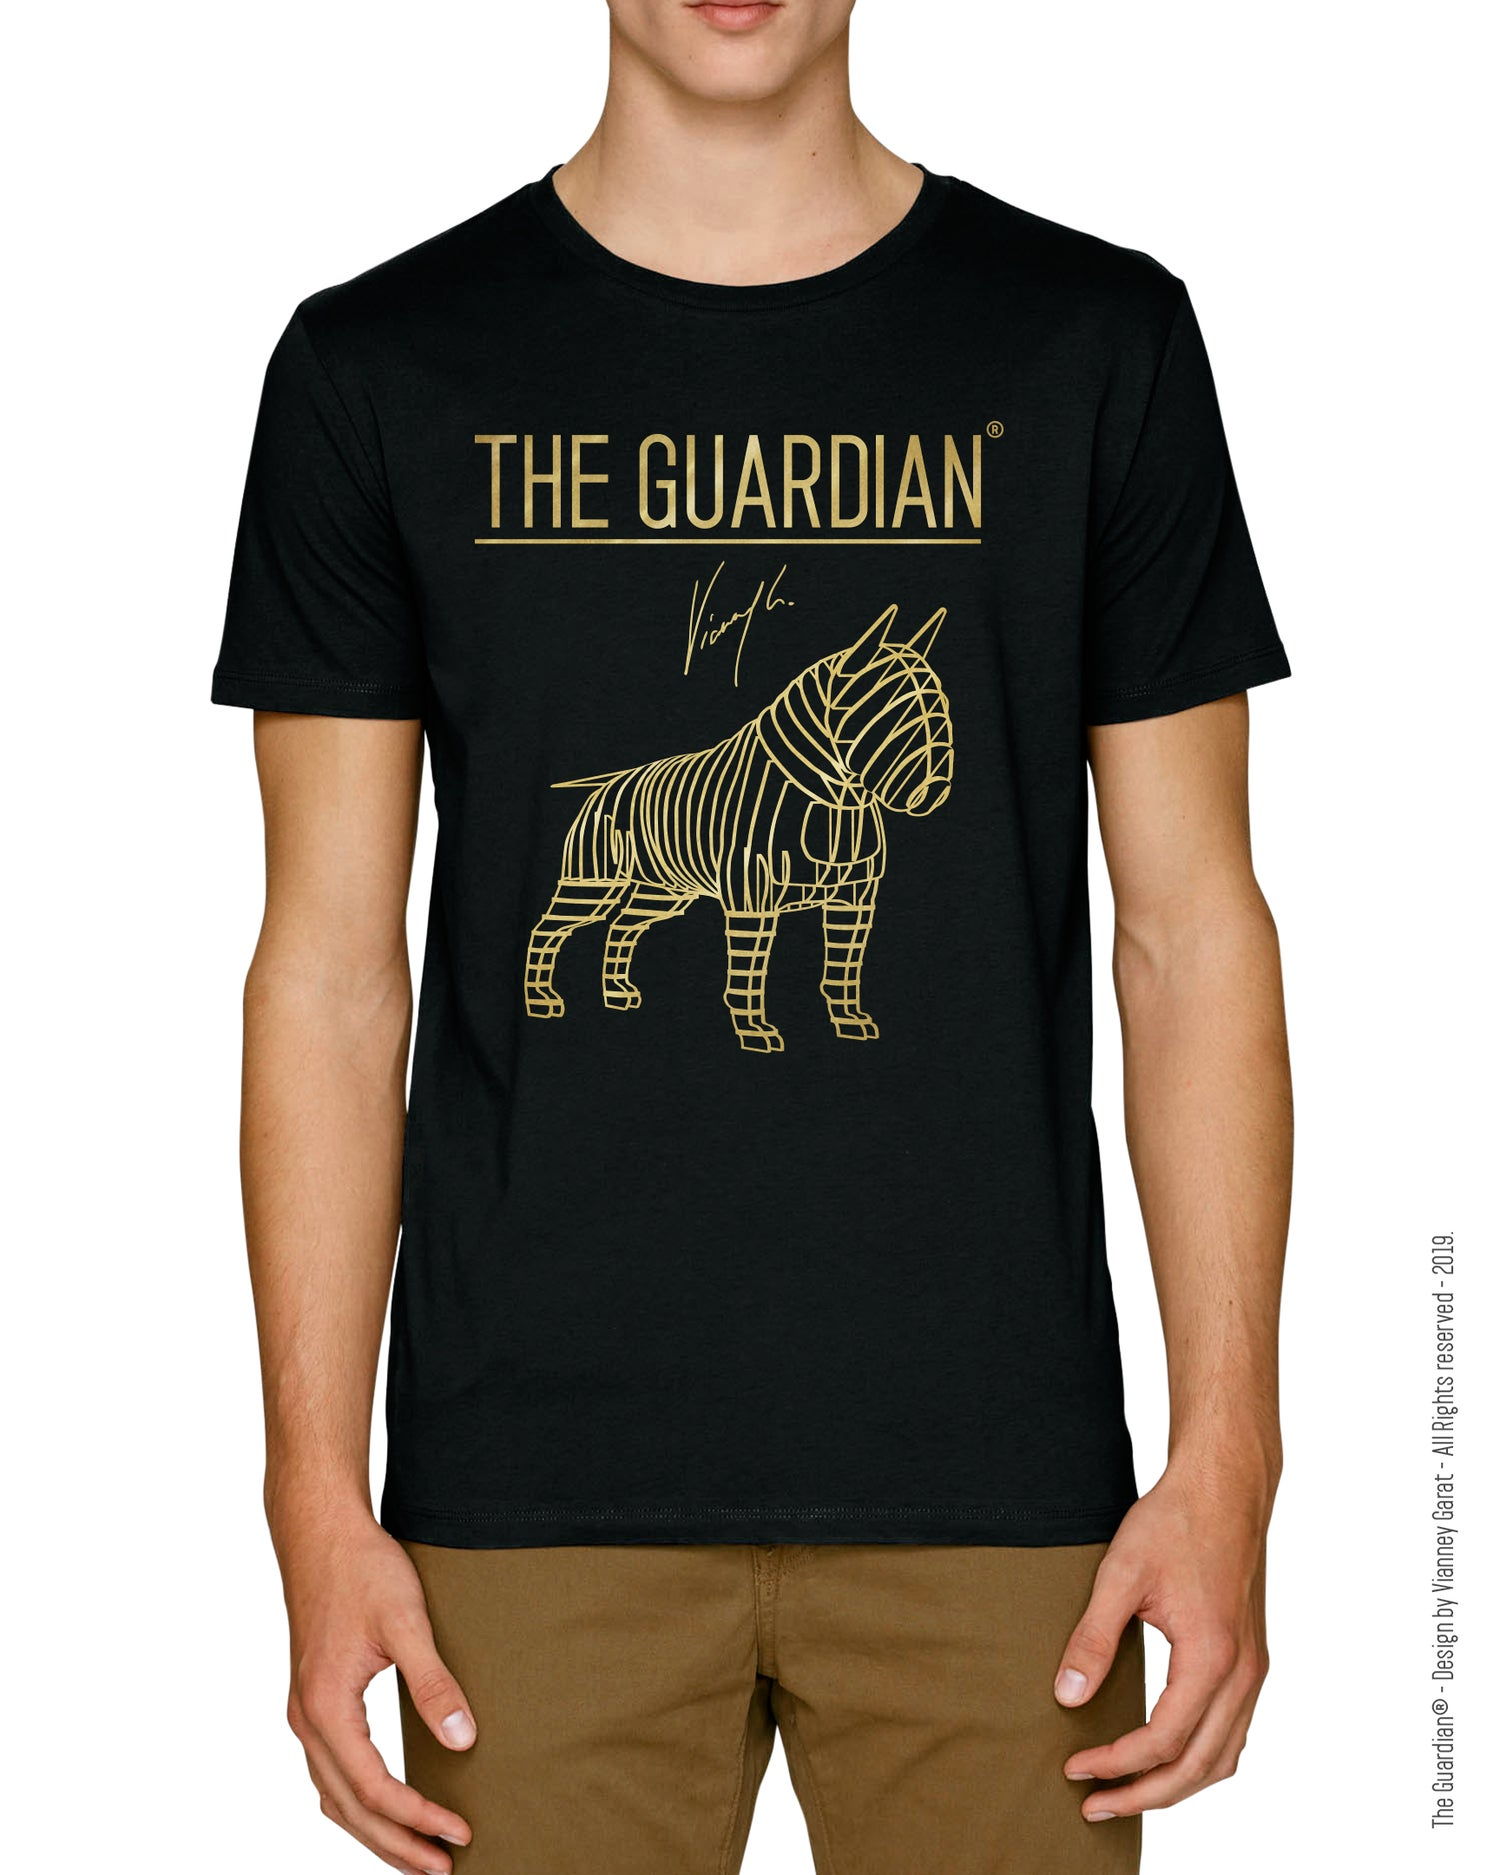 Image of T-SHIRT THE GUARDIAN® - MONTANA EDITION - Extra Limited Edition